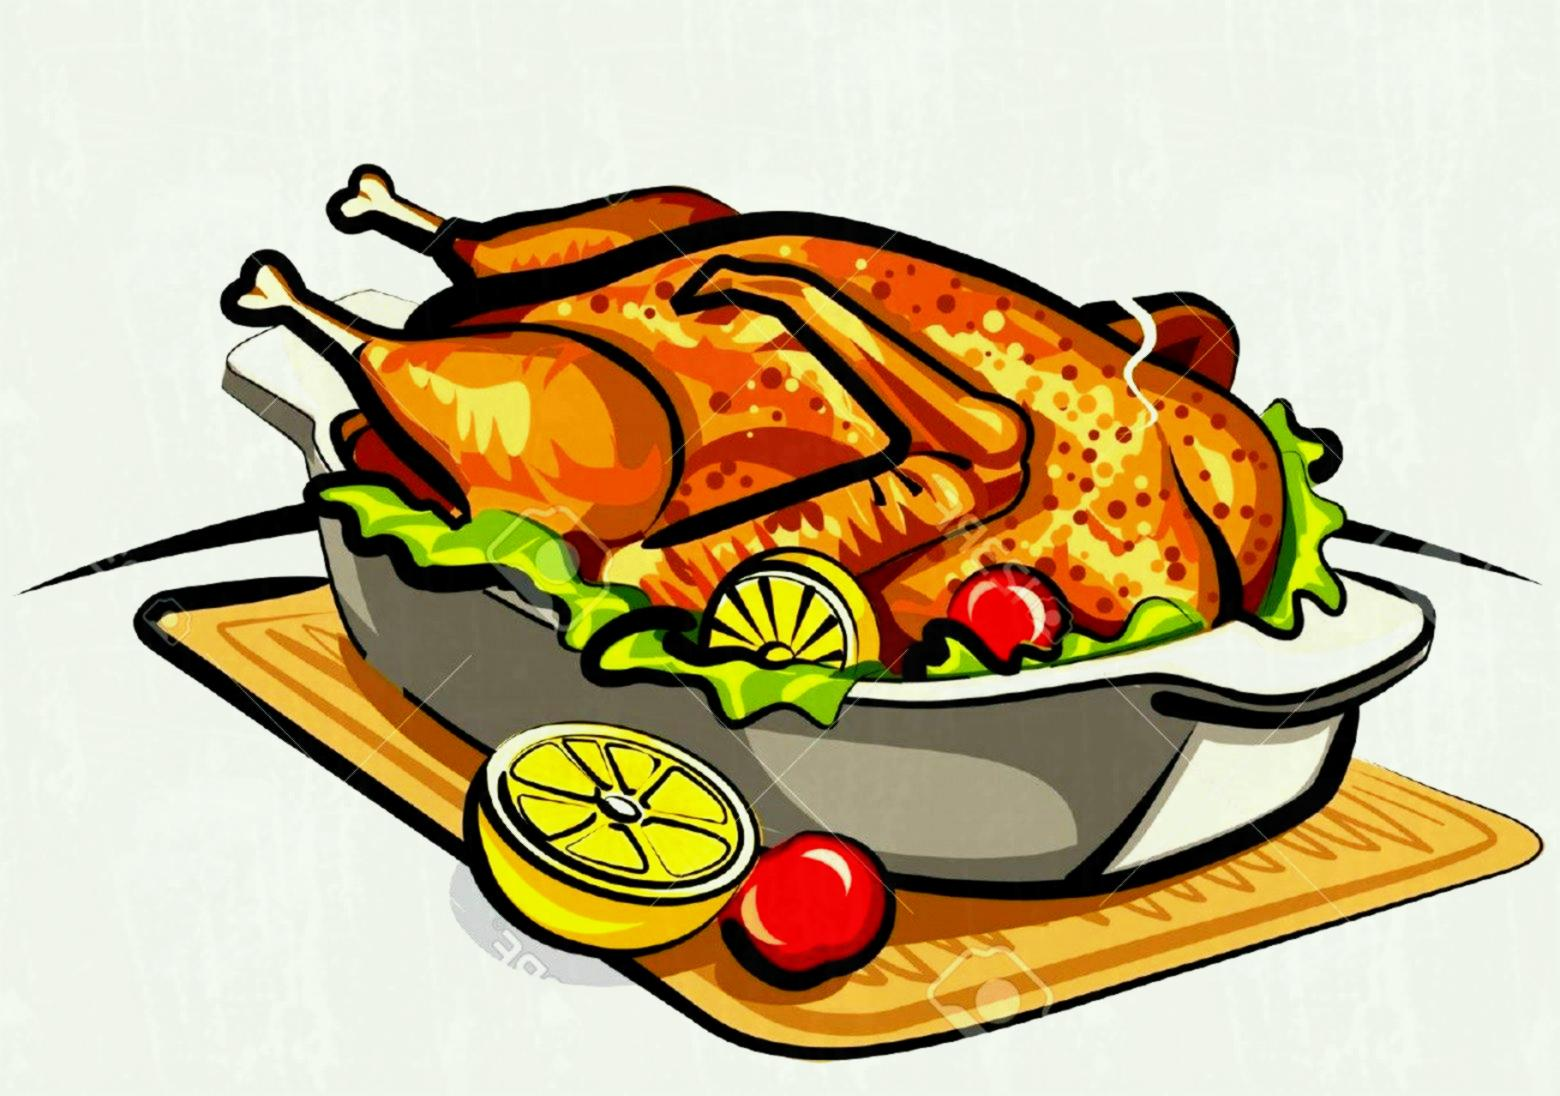 Roasted chicken clipart 1 » Clipart Station.